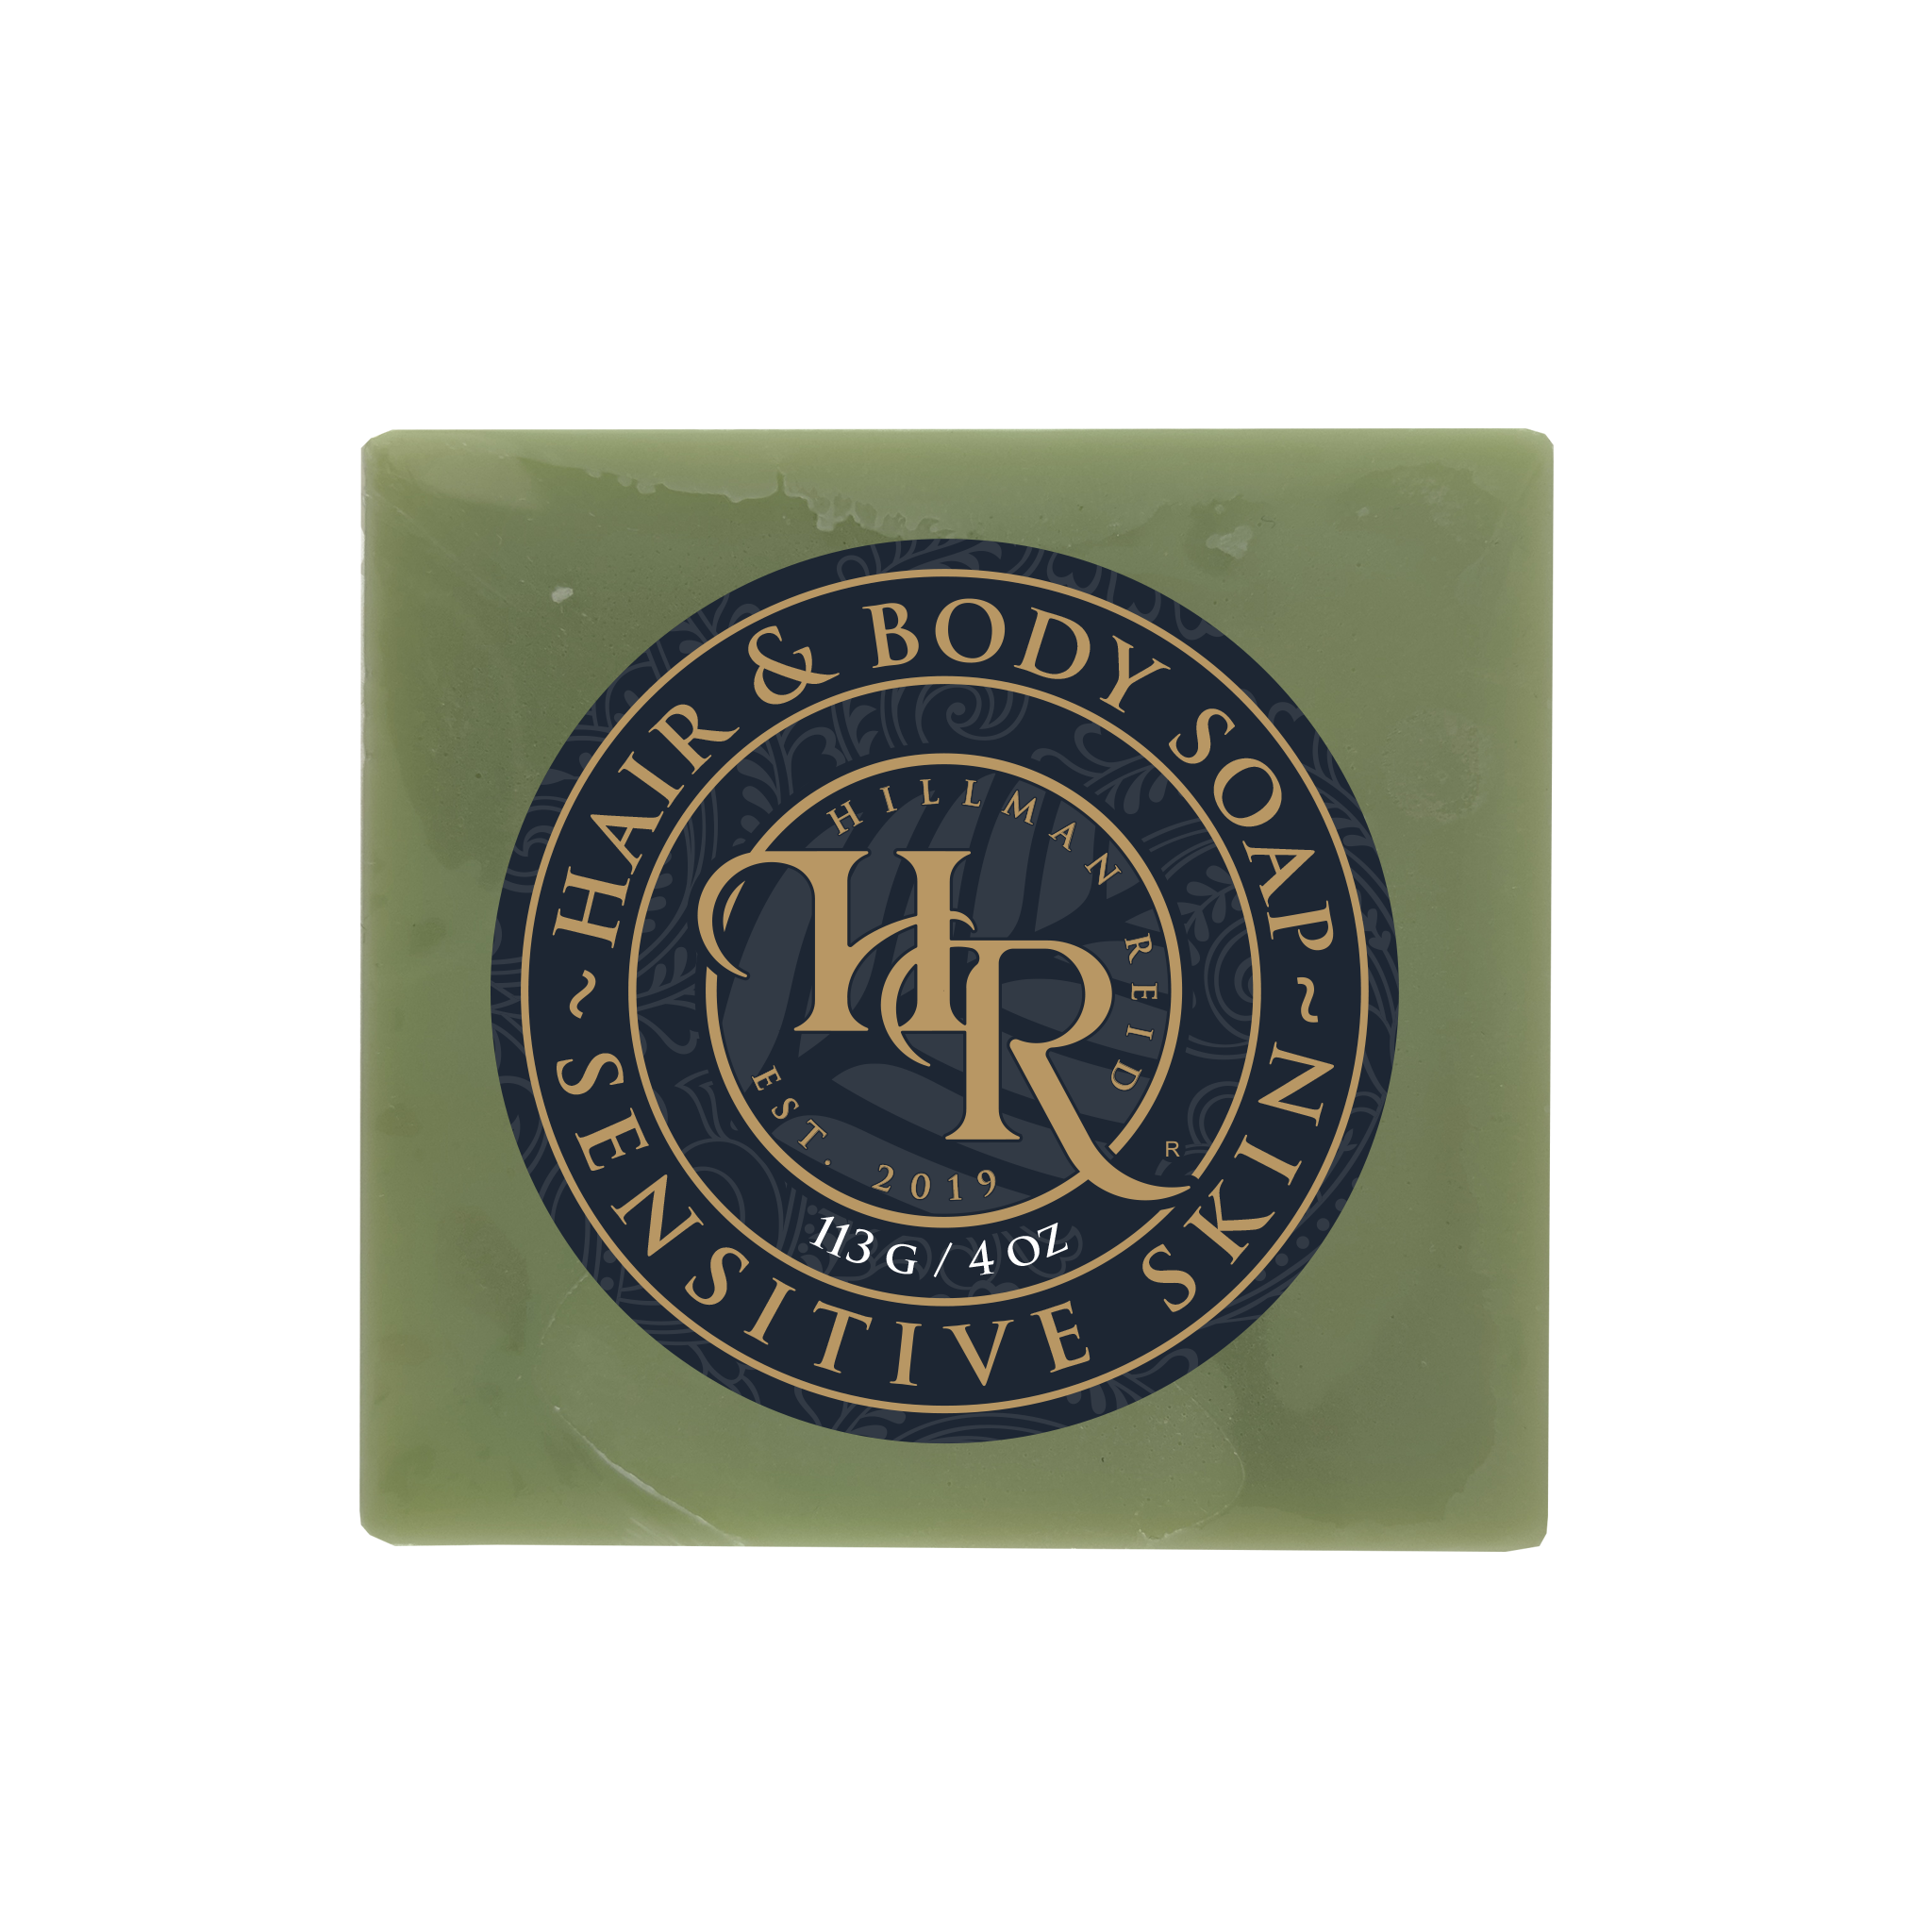 Hair & Body Soap™: All Natural Organic Soap